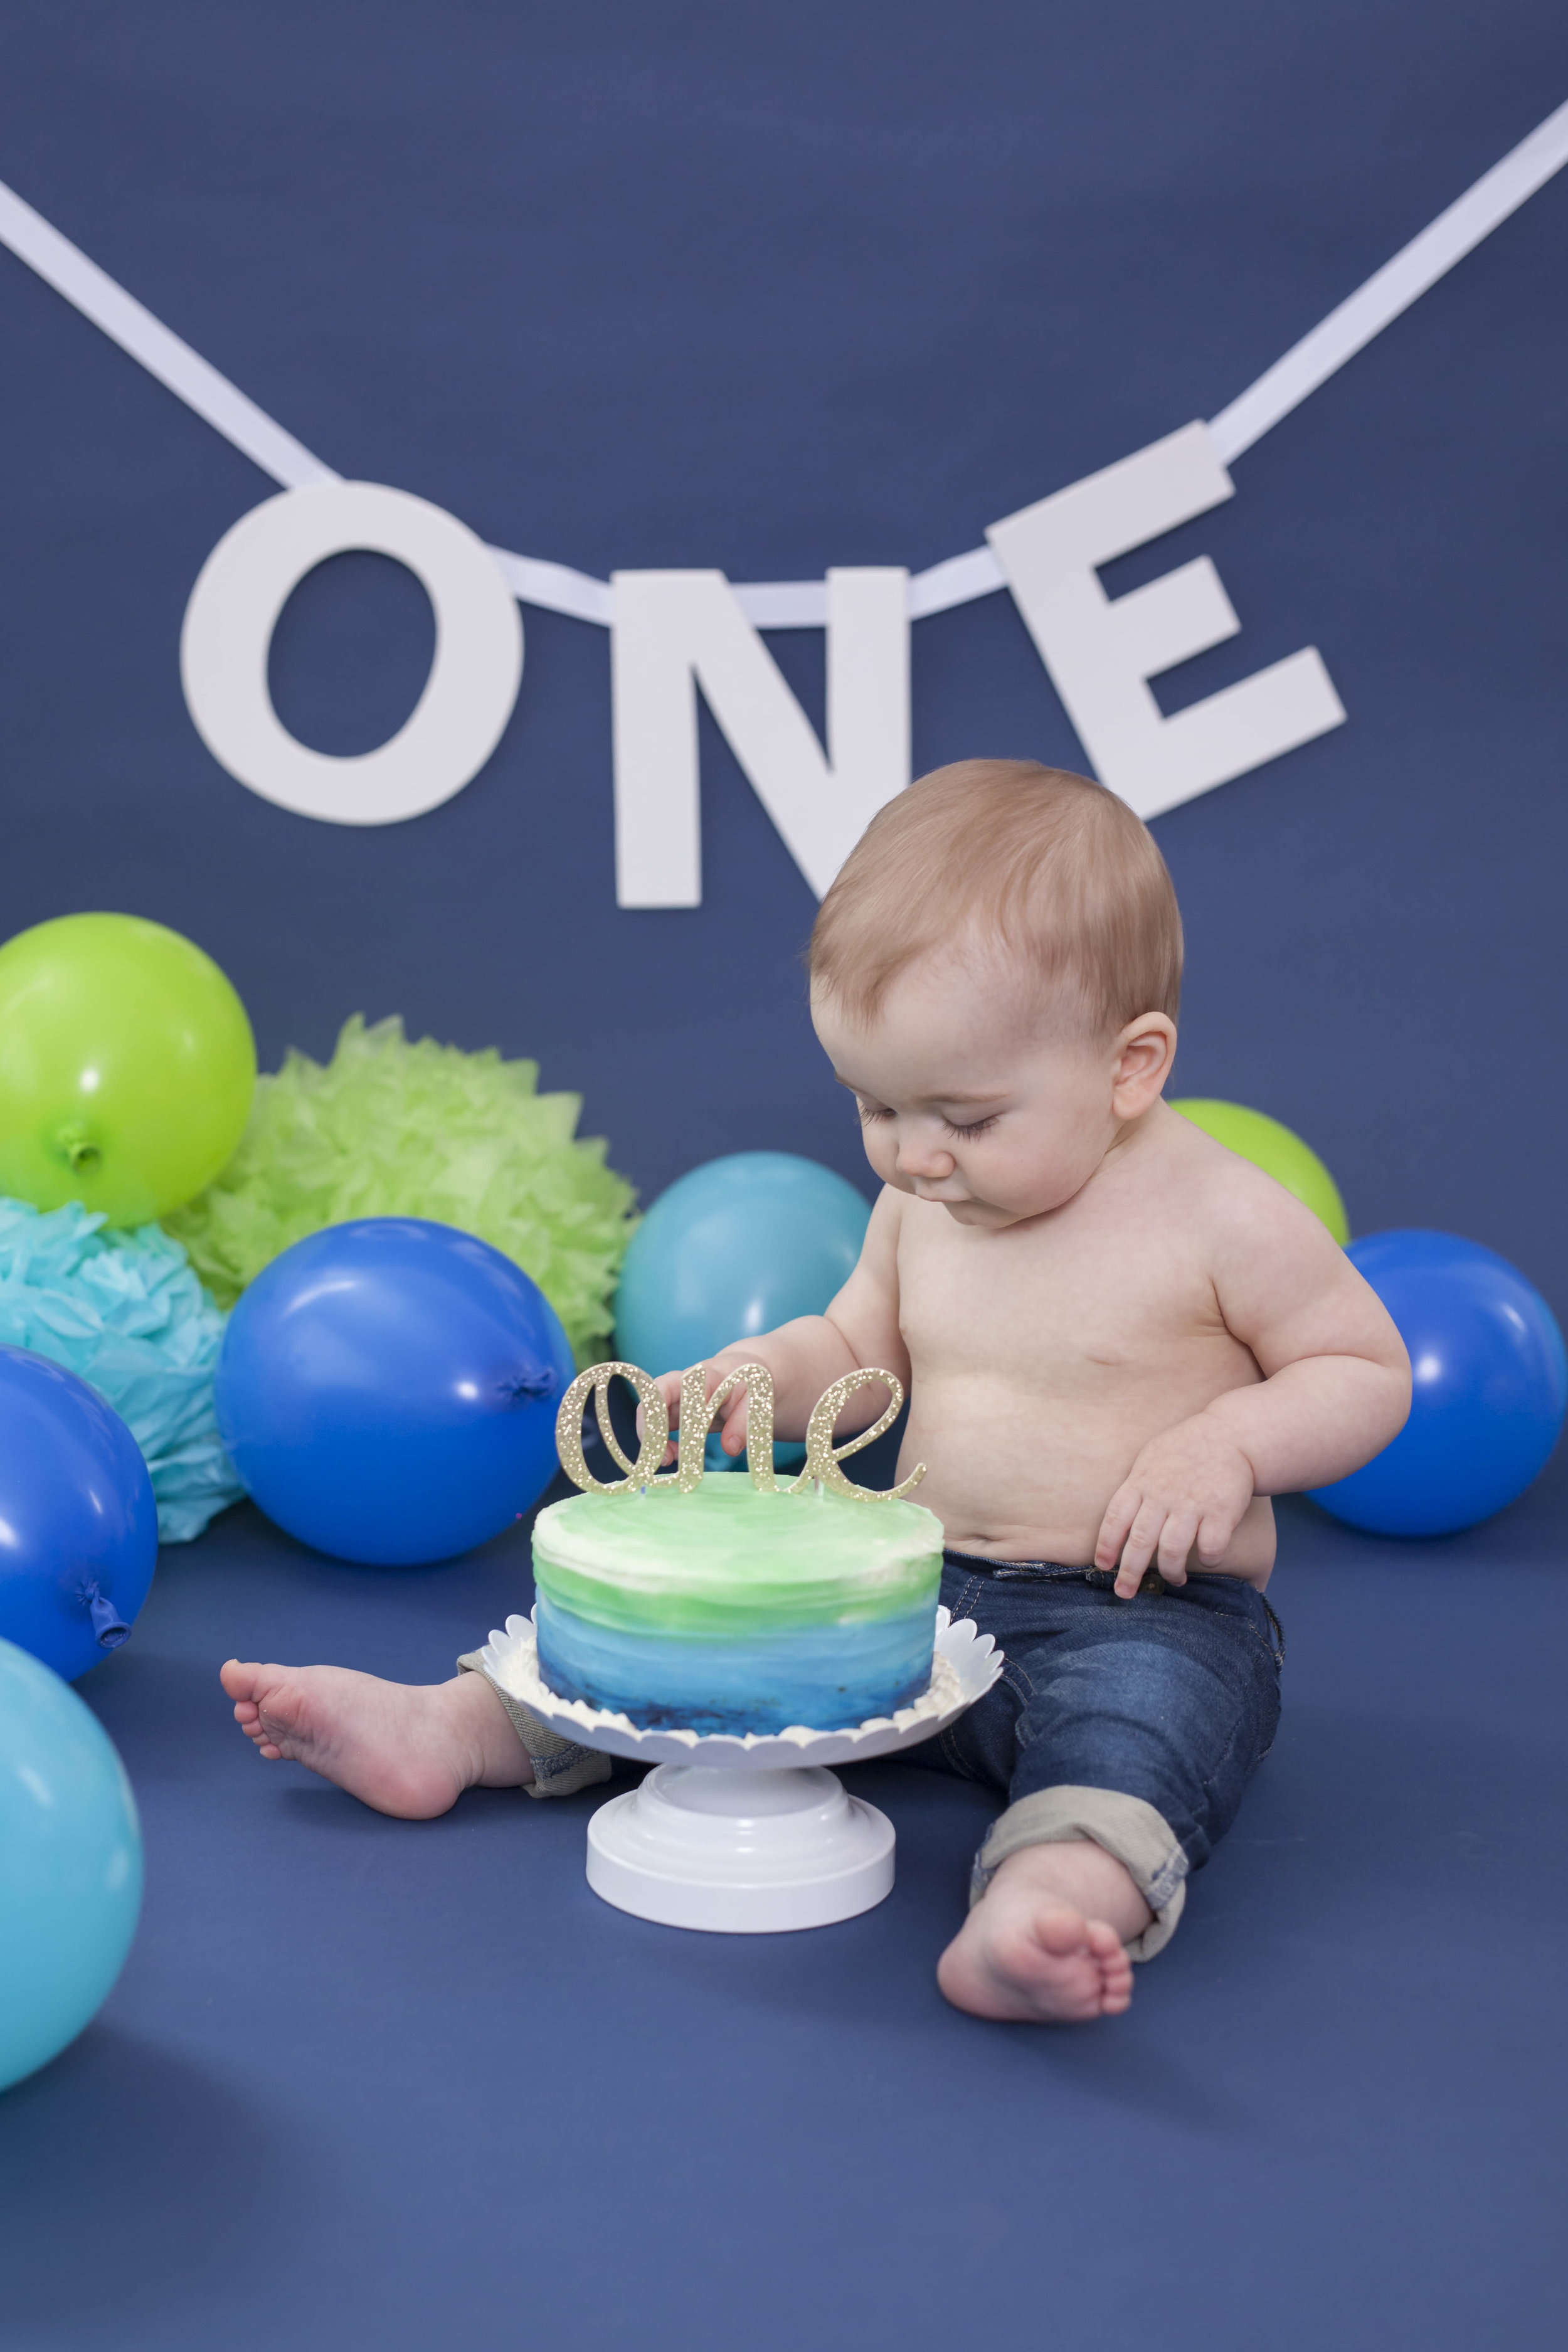 Newtown_PA_Cake_Smash_Photographer